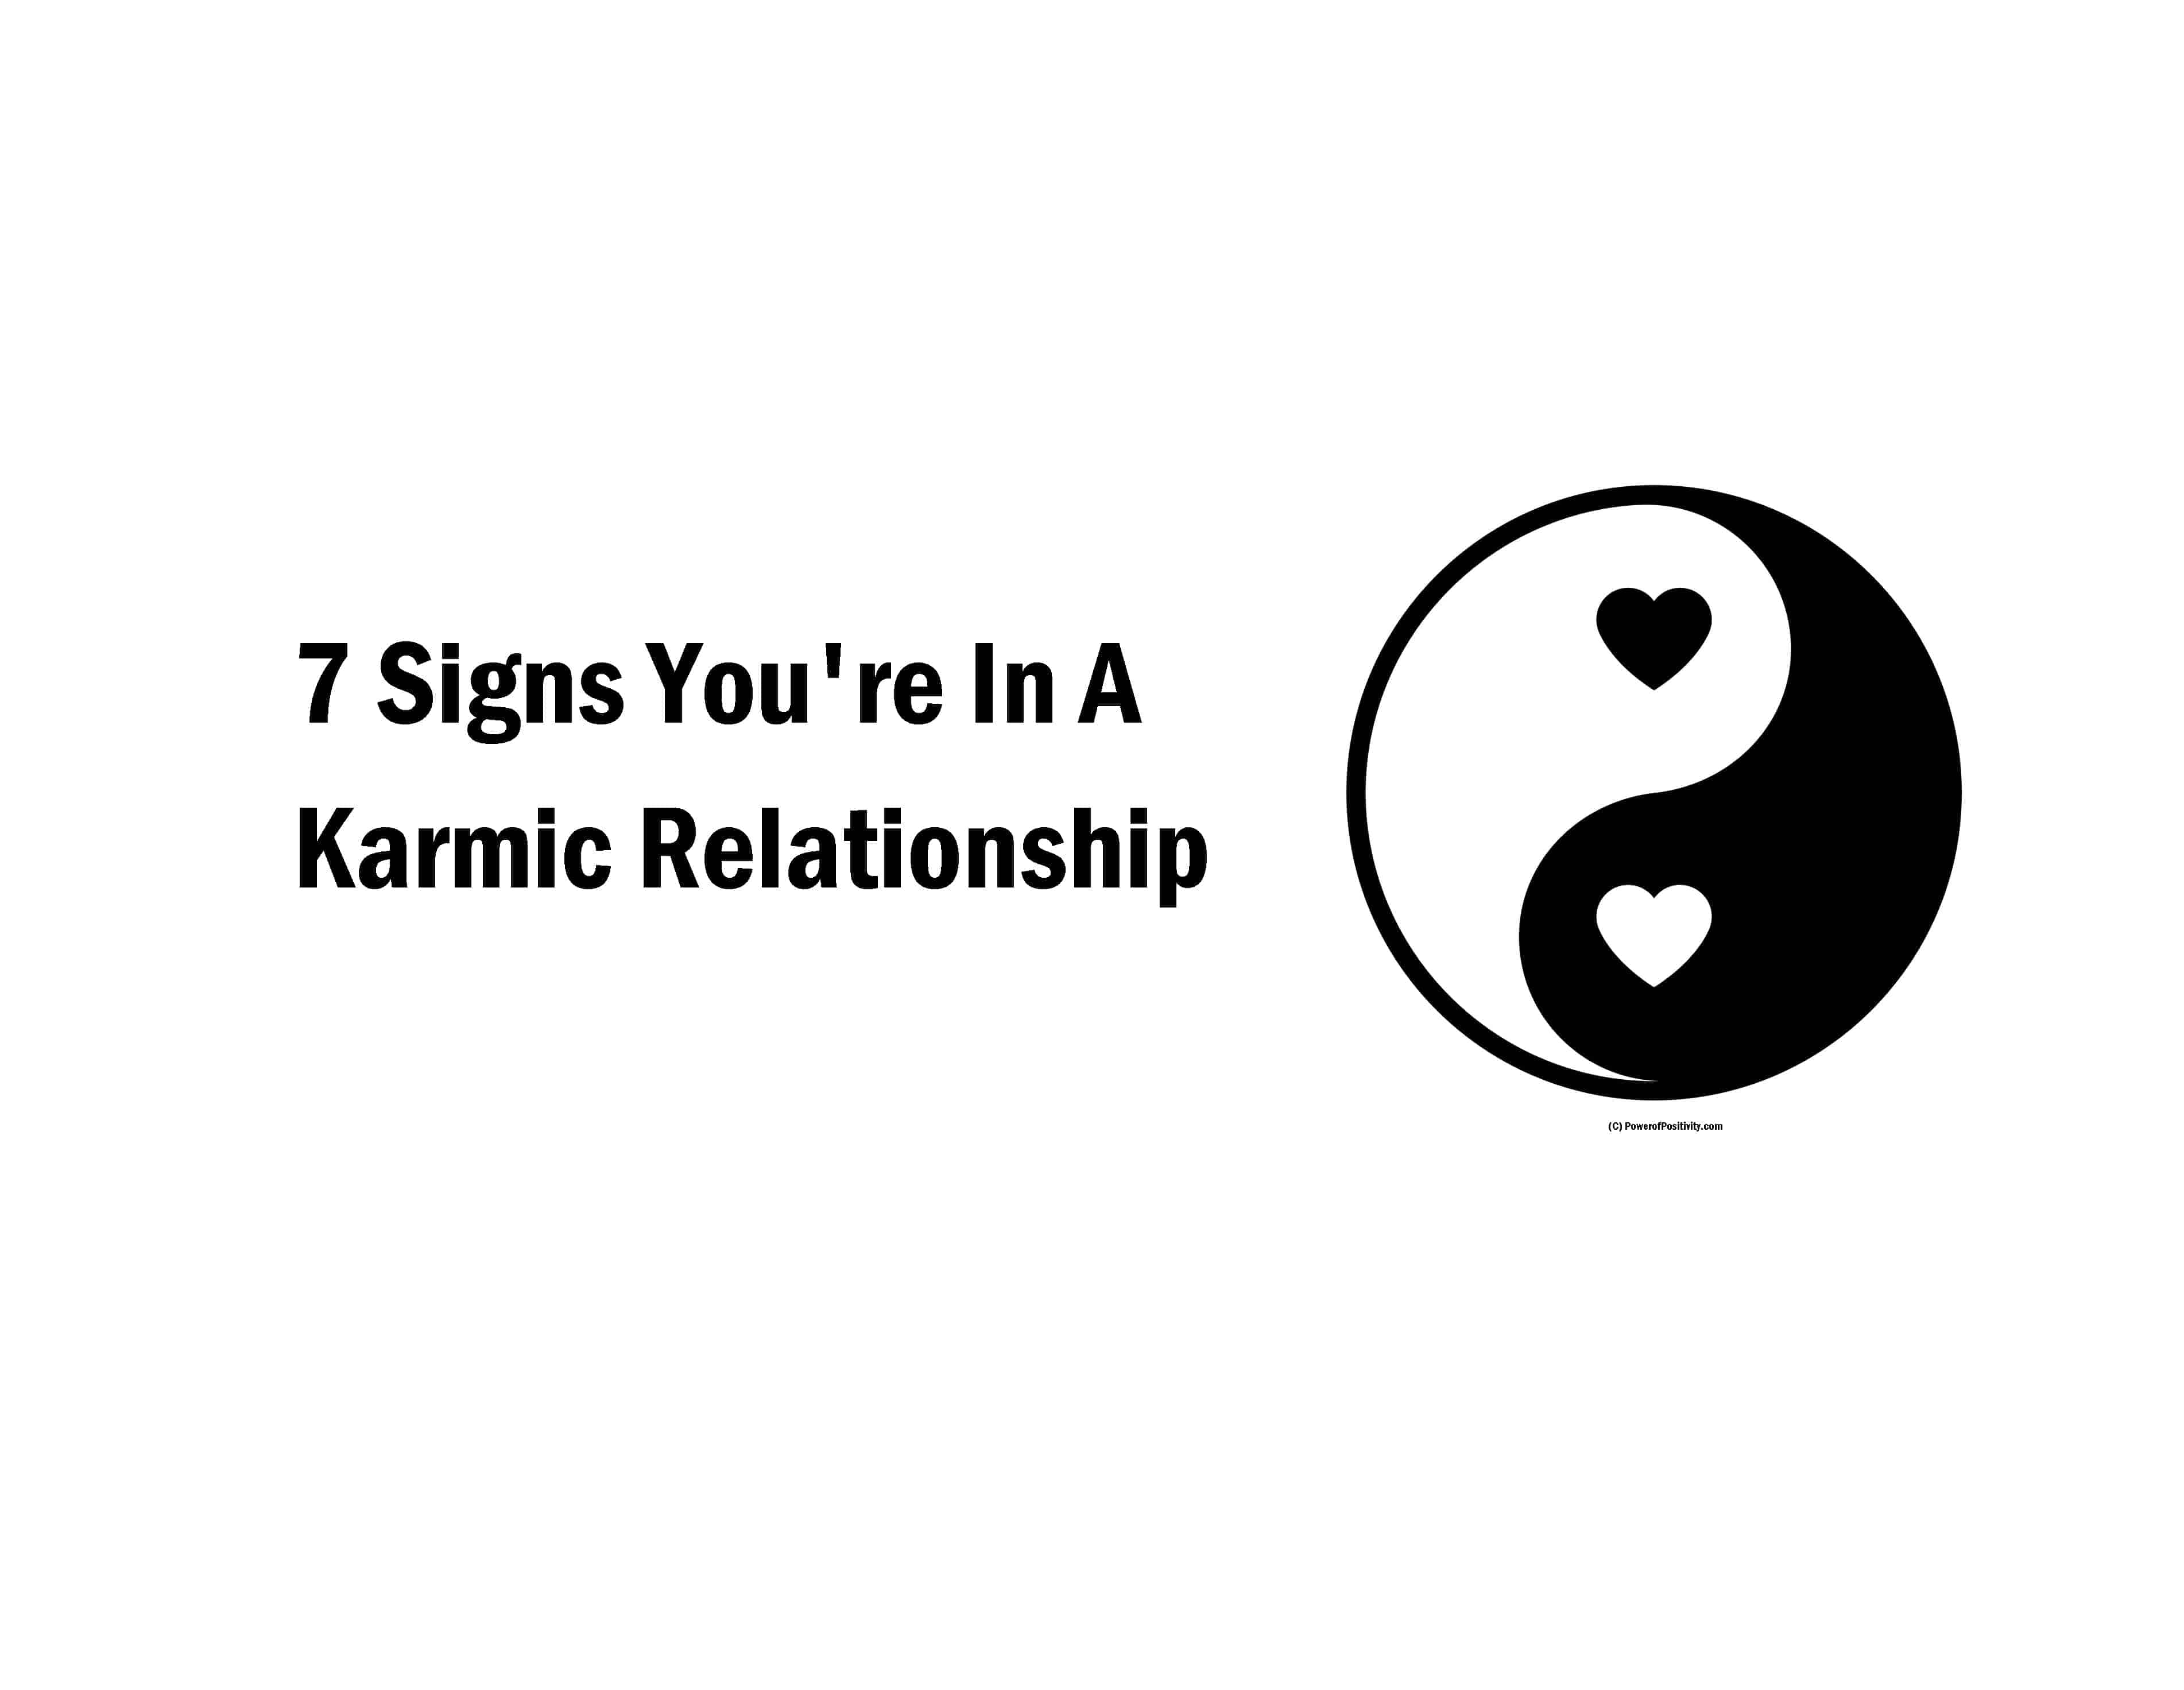 Karmic relationship marriage dating